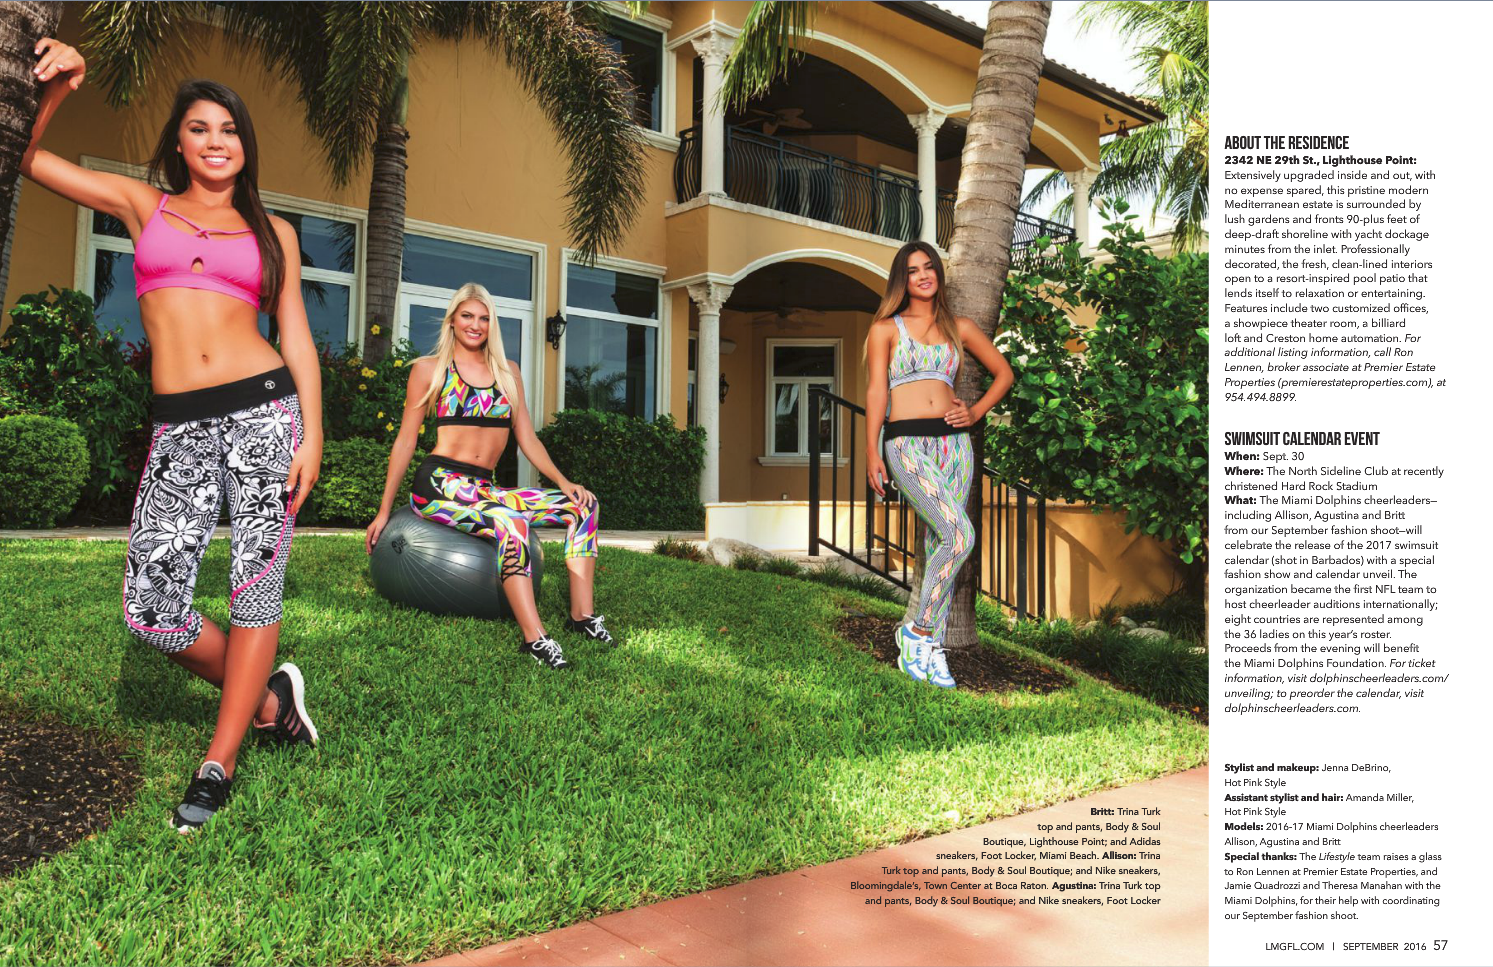 Las Olas Lifestyle Magazine - Miami Dolphins Cheerleaders - Cover shoot - Interior 4